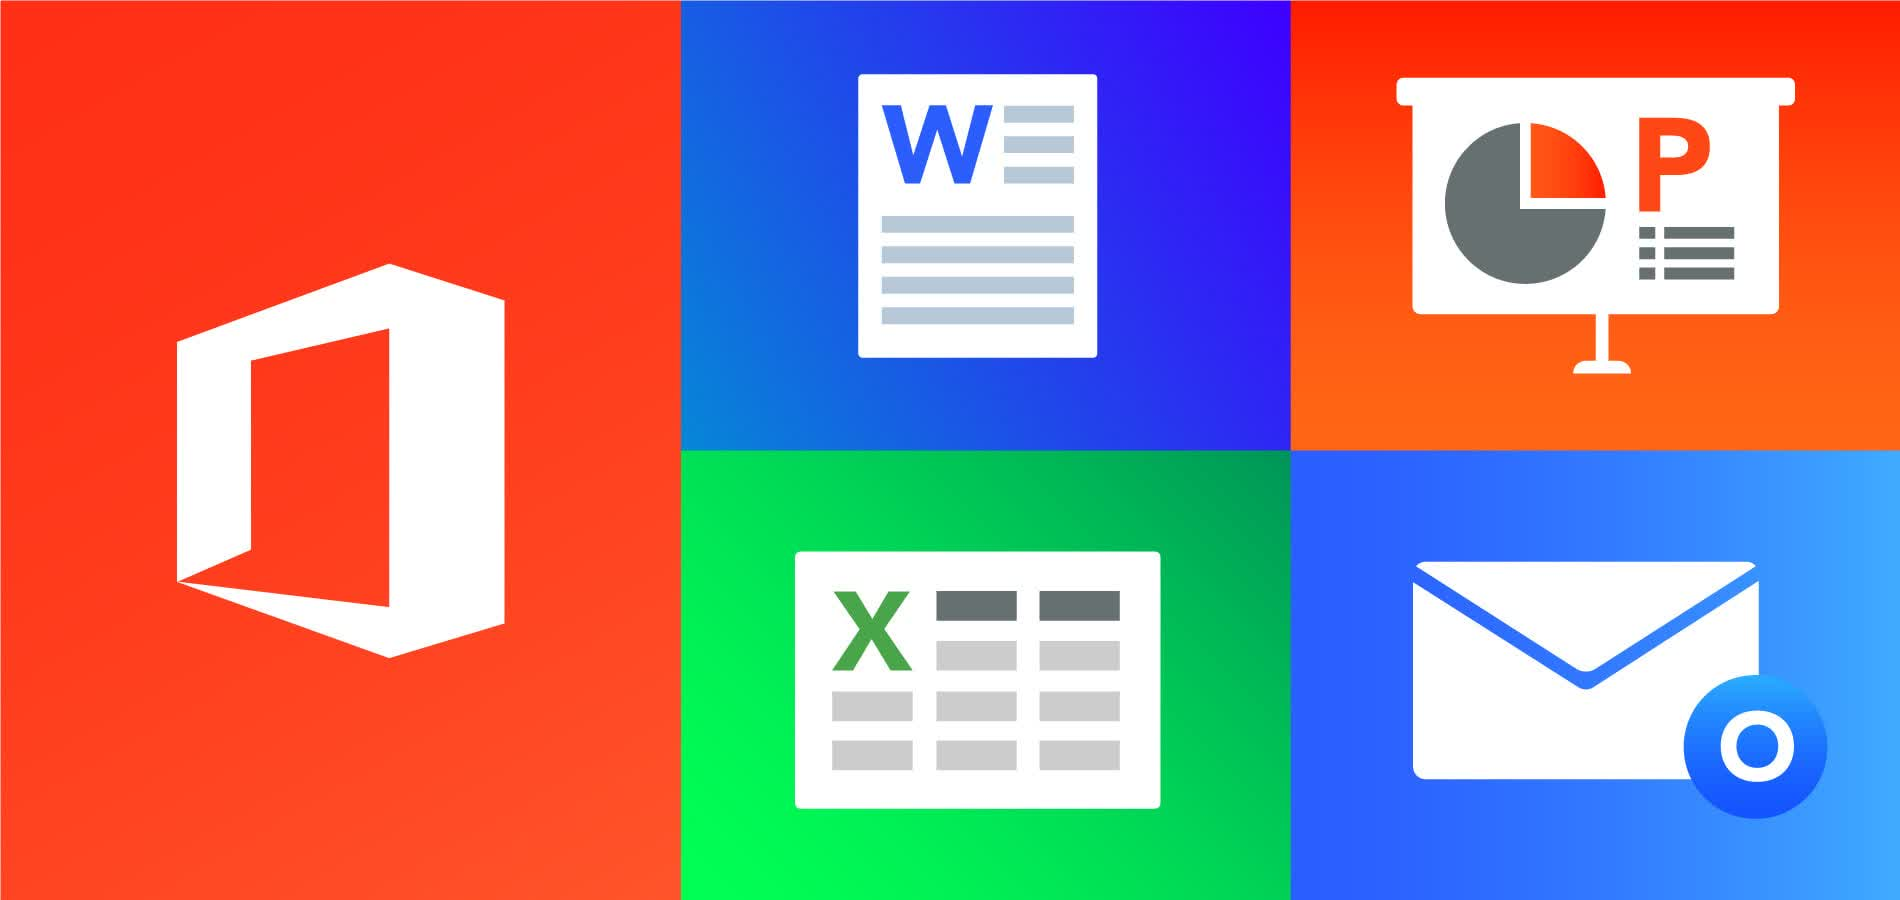 Microsoft details Office 2021 features and pricing ahead of October 5 launch